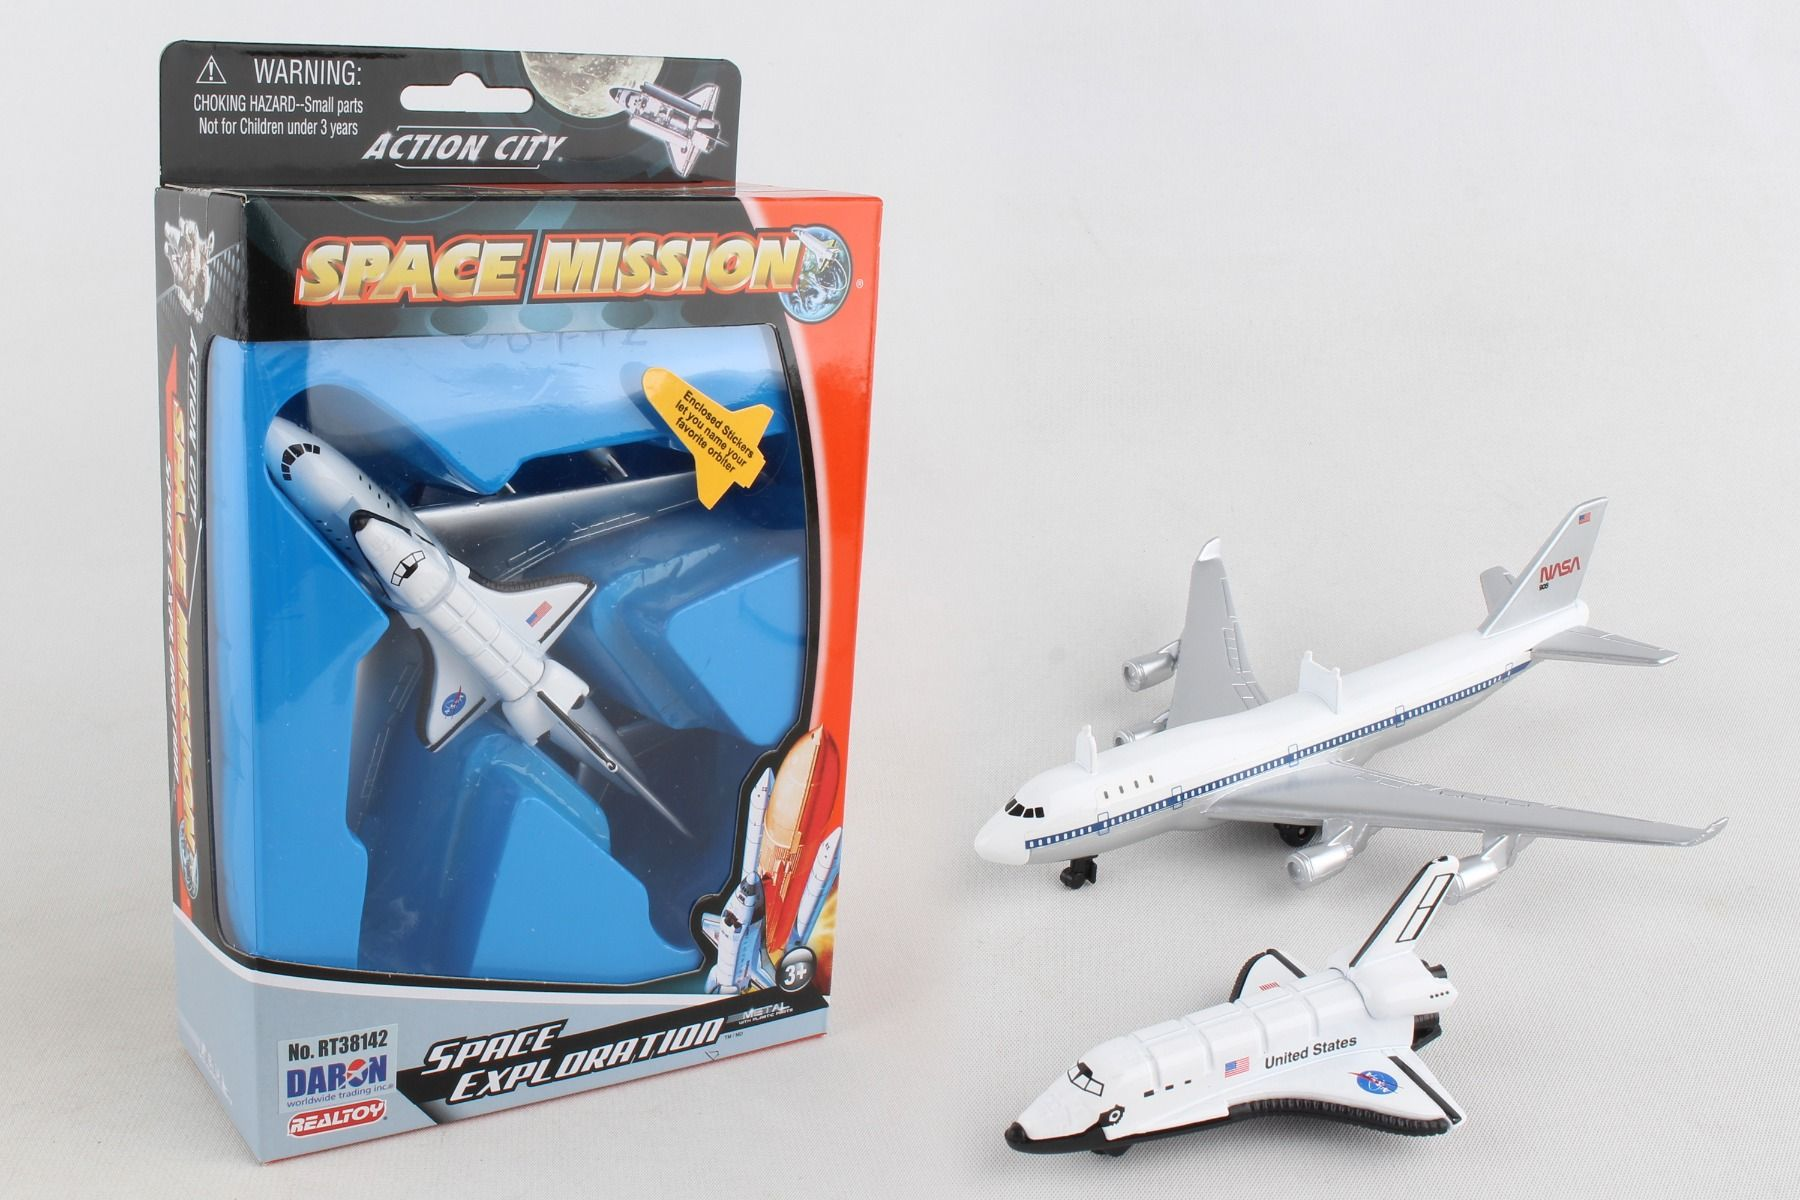 B747 AND SHUTTLE IN SINGLE BOX